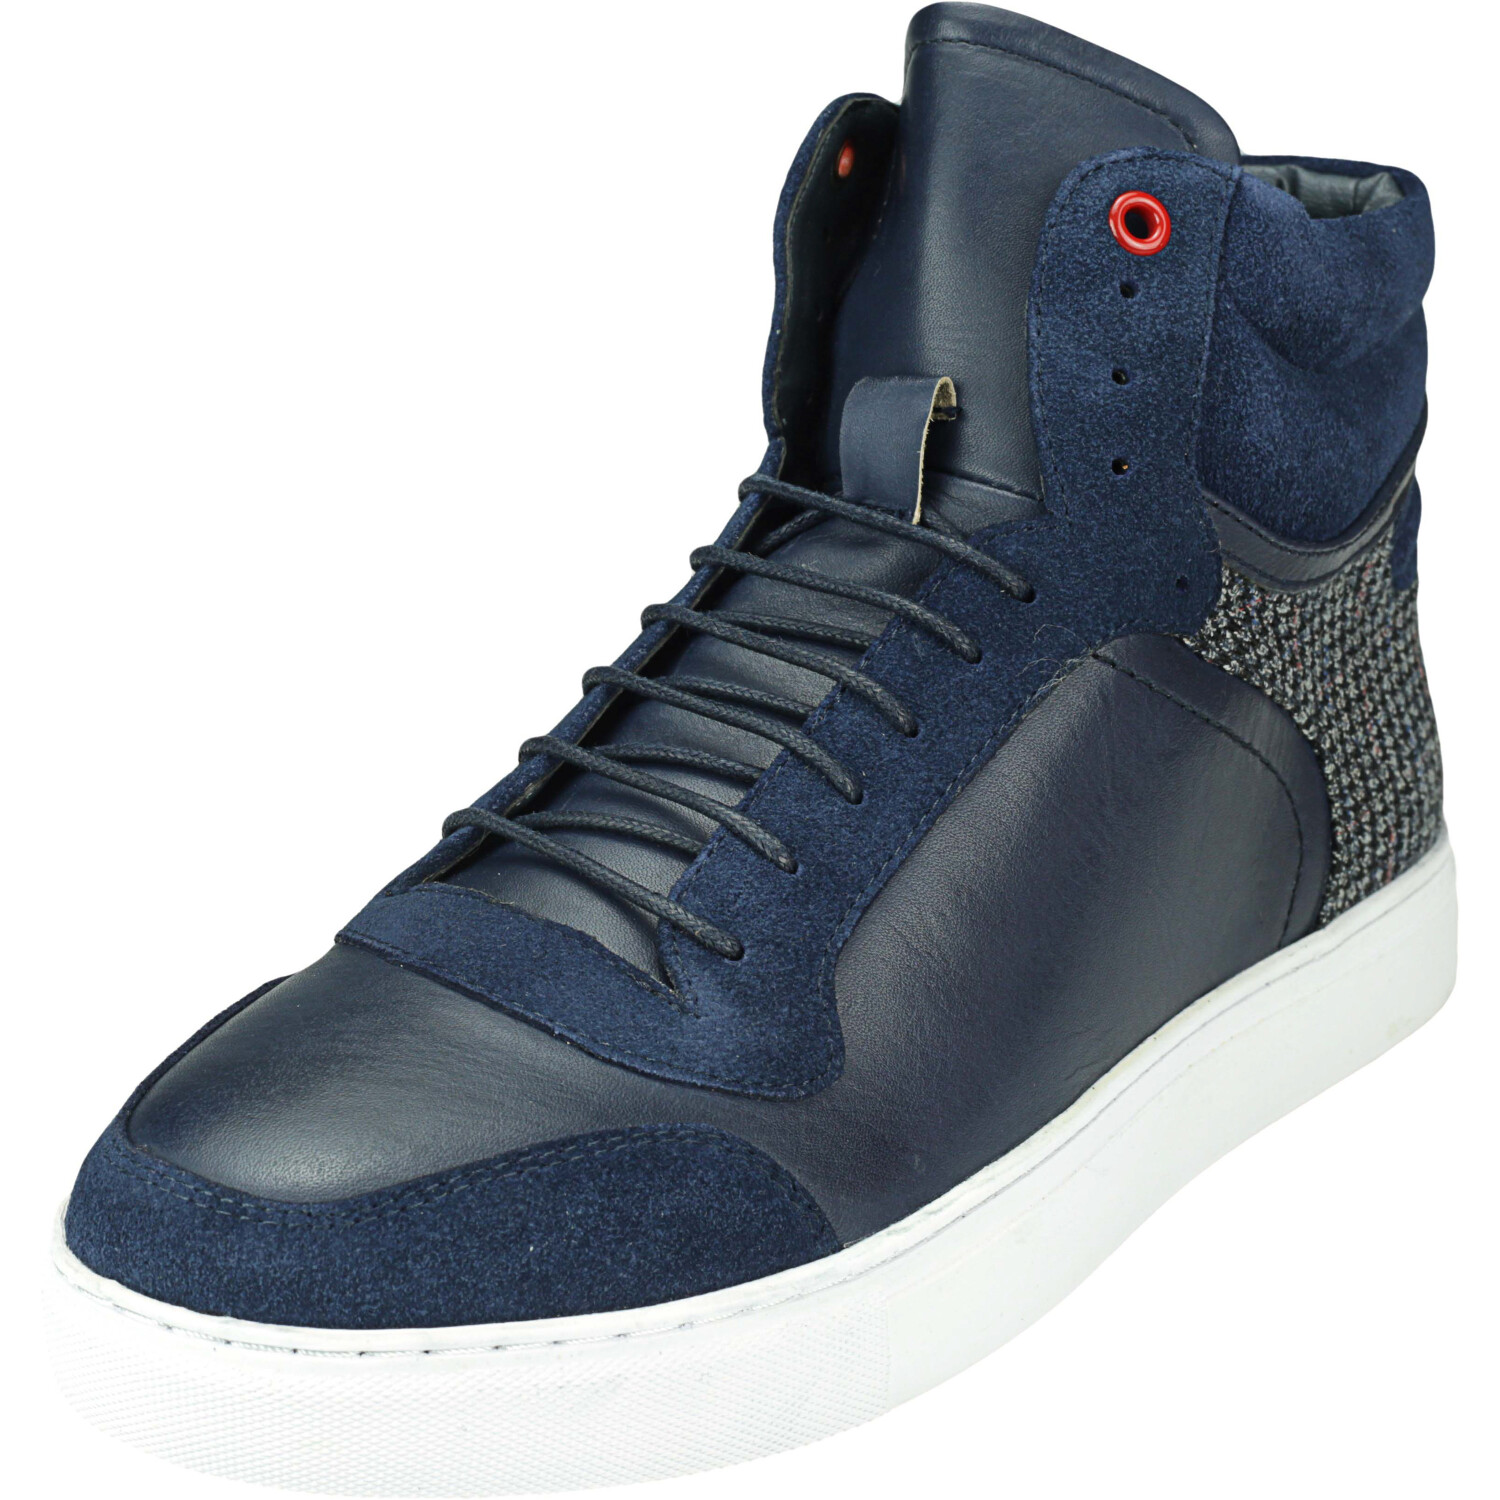 English Laundry Men's George Blue High-Top Leather Sneaker - 9M